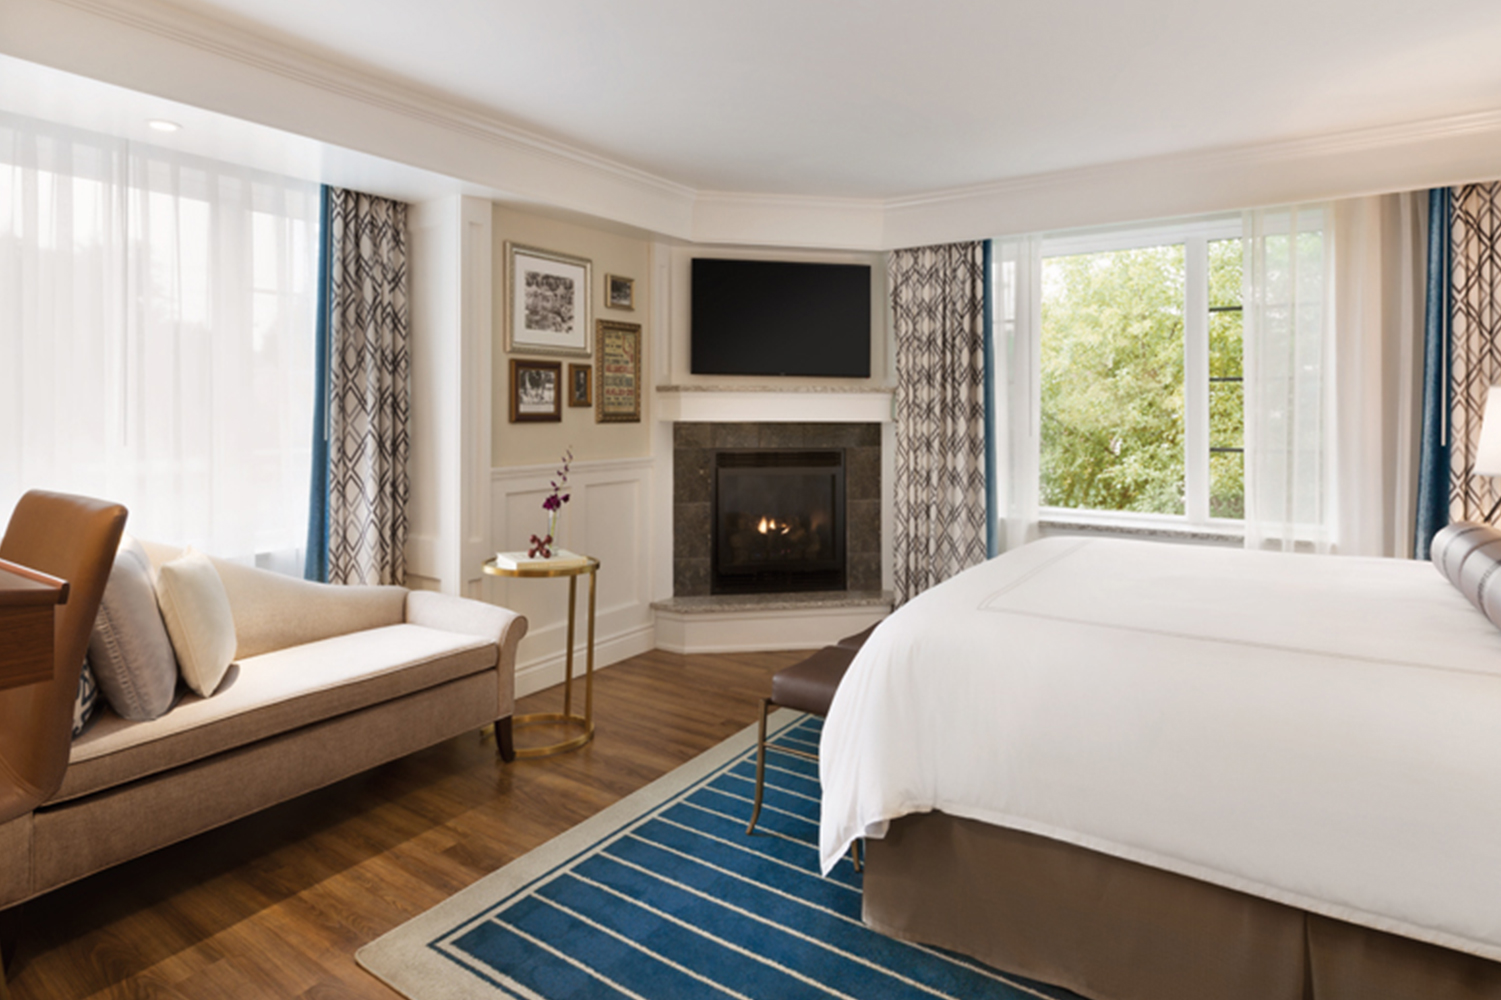 Guest room with fireplace at Reikart House